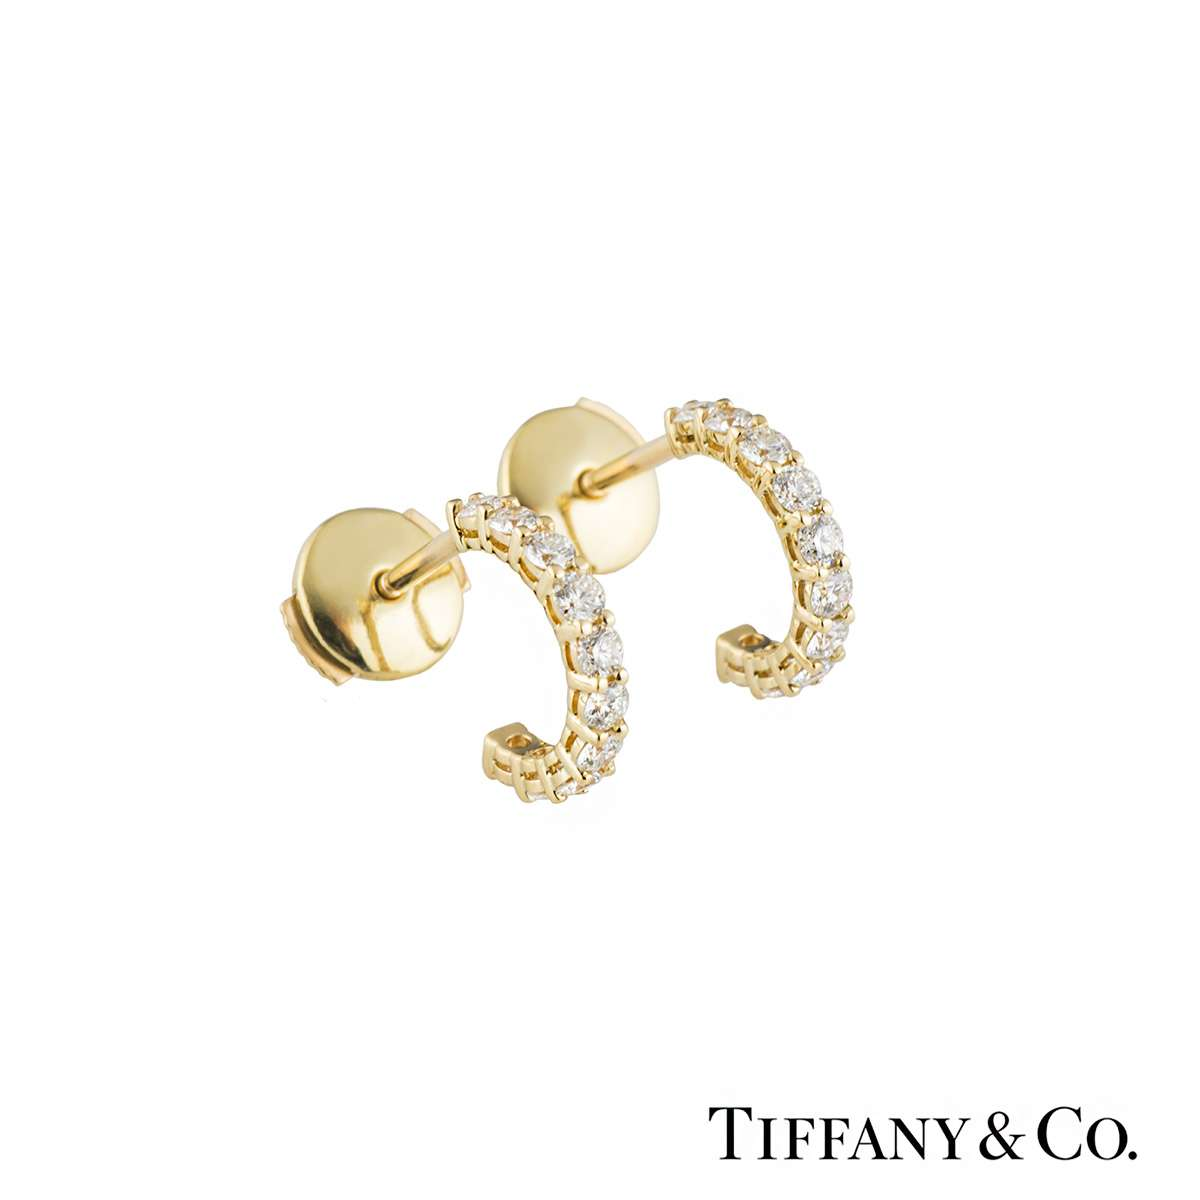 Tiffany Diamond Hoop Earrings